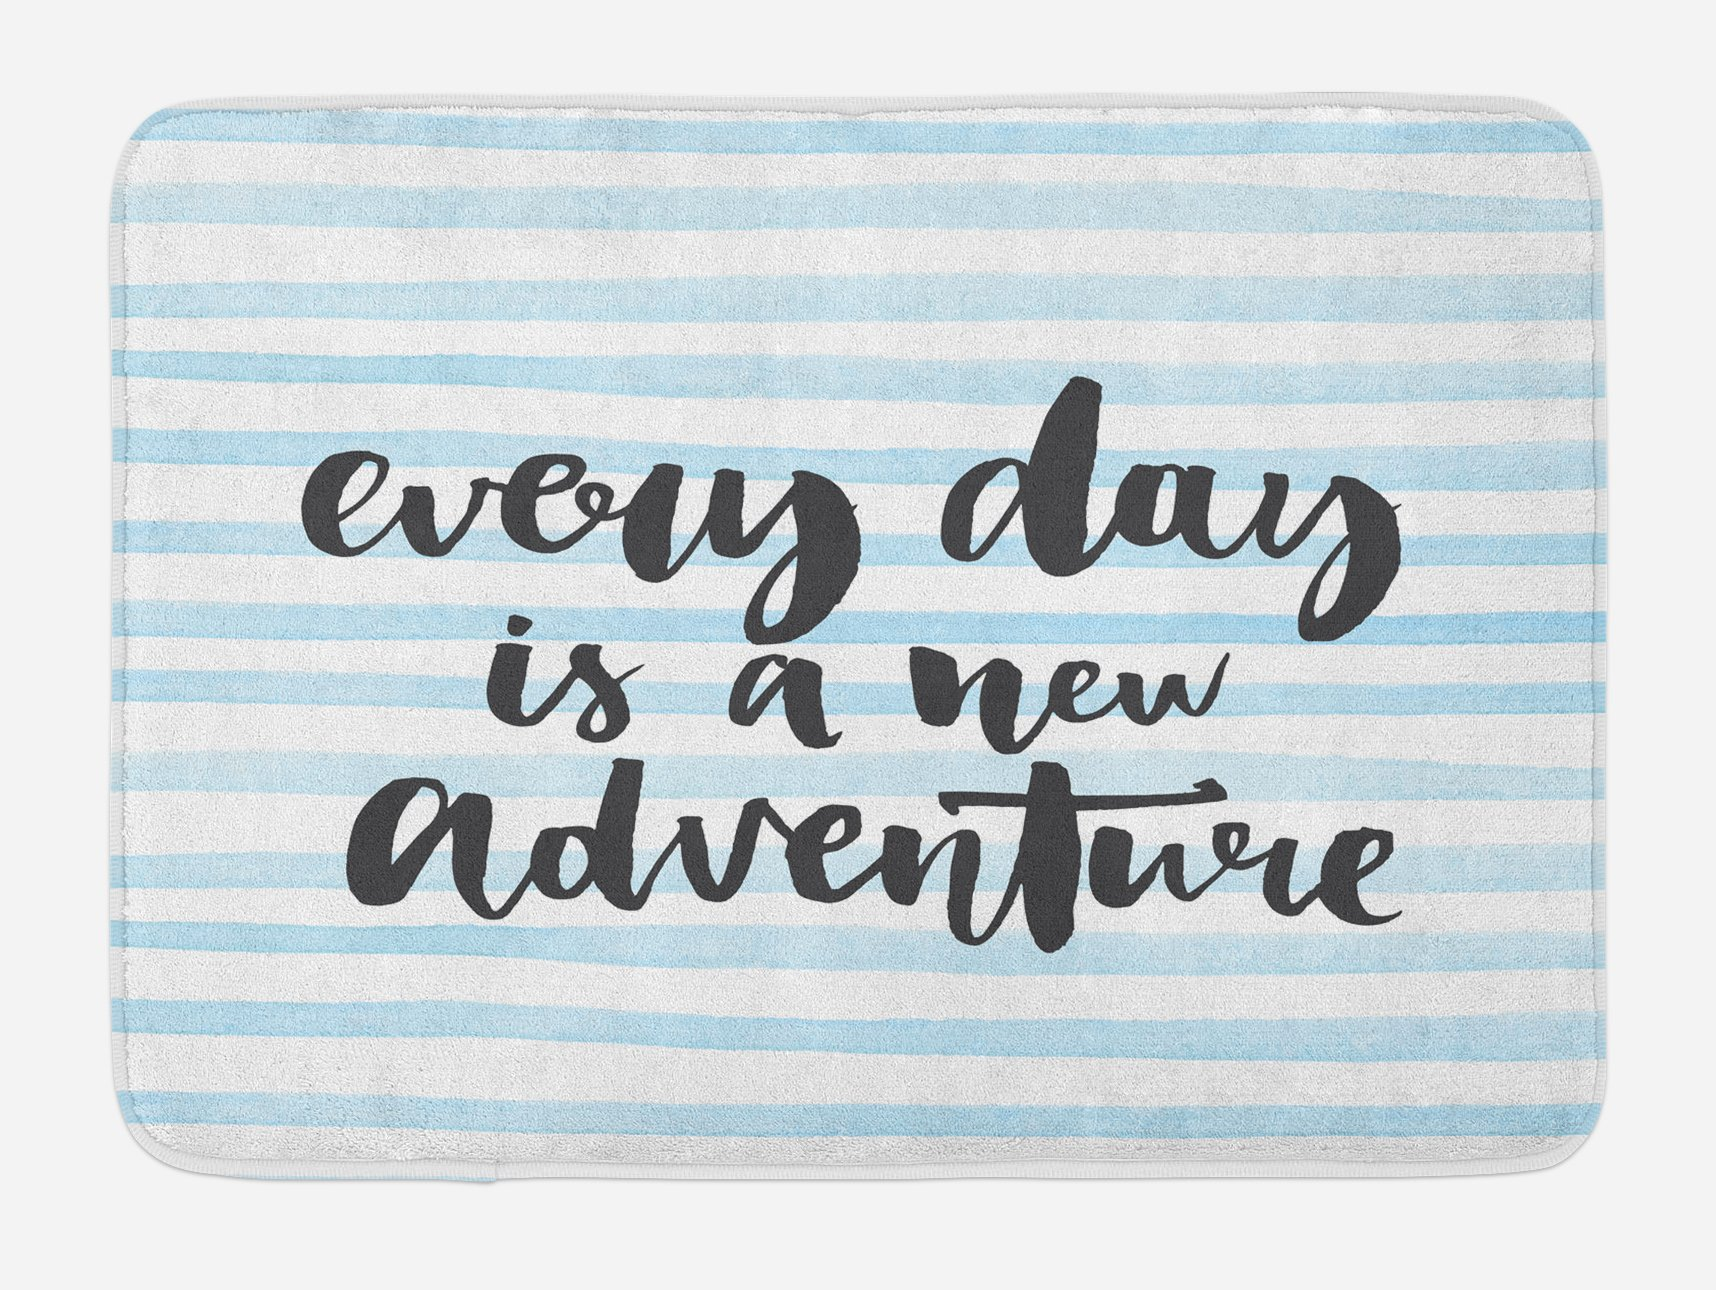 Lunarable Quote Bath Mat, Everyday is a New Adventure Calligraphy on Striped Background, Plush Bathroom Decor Mat with Non Slip Backing, 29.5 W X 17.5 W Inches, Baby Blue White and Charcoal Grey